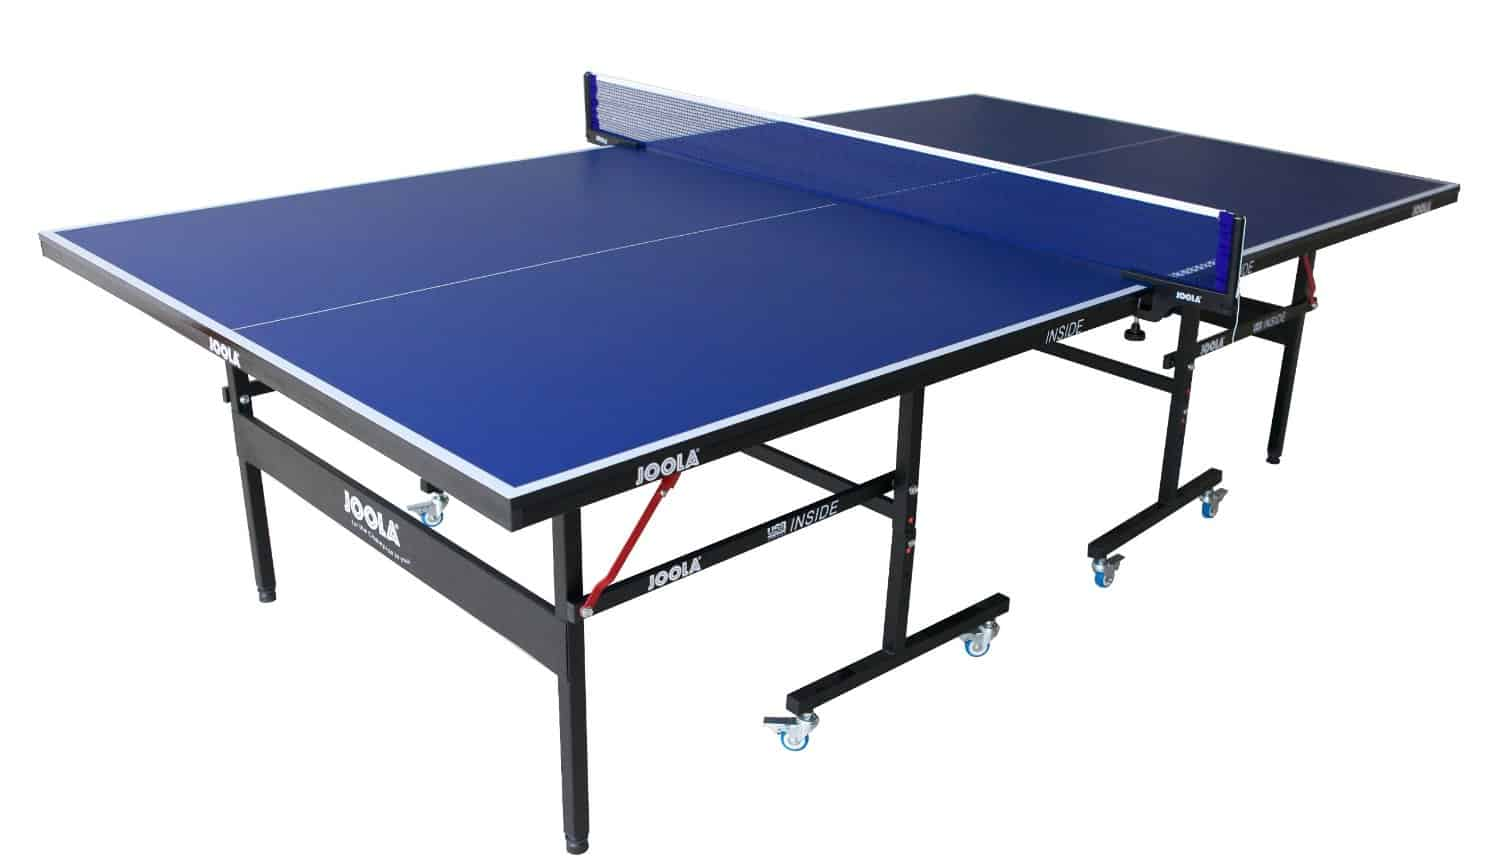 Ping pong table top - Joola Inside Table Tennis Review